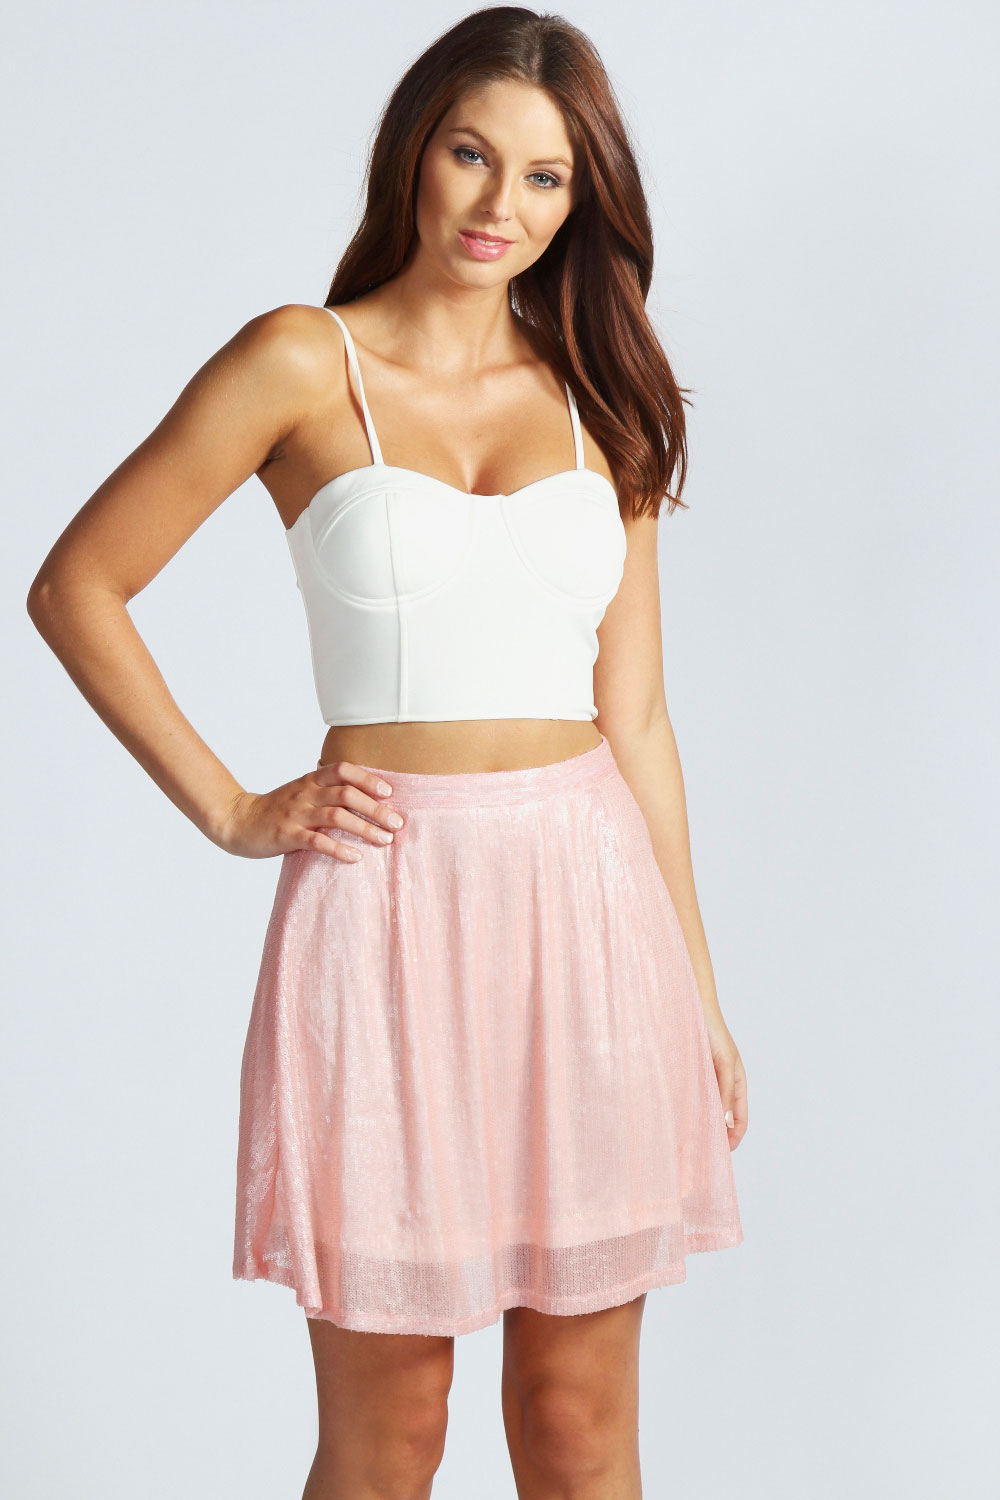 Shop the latest trends in womens fashion at iCLOTHING. From dresses, tops, footwear and accessories, we have you covered - all with next day delivery!